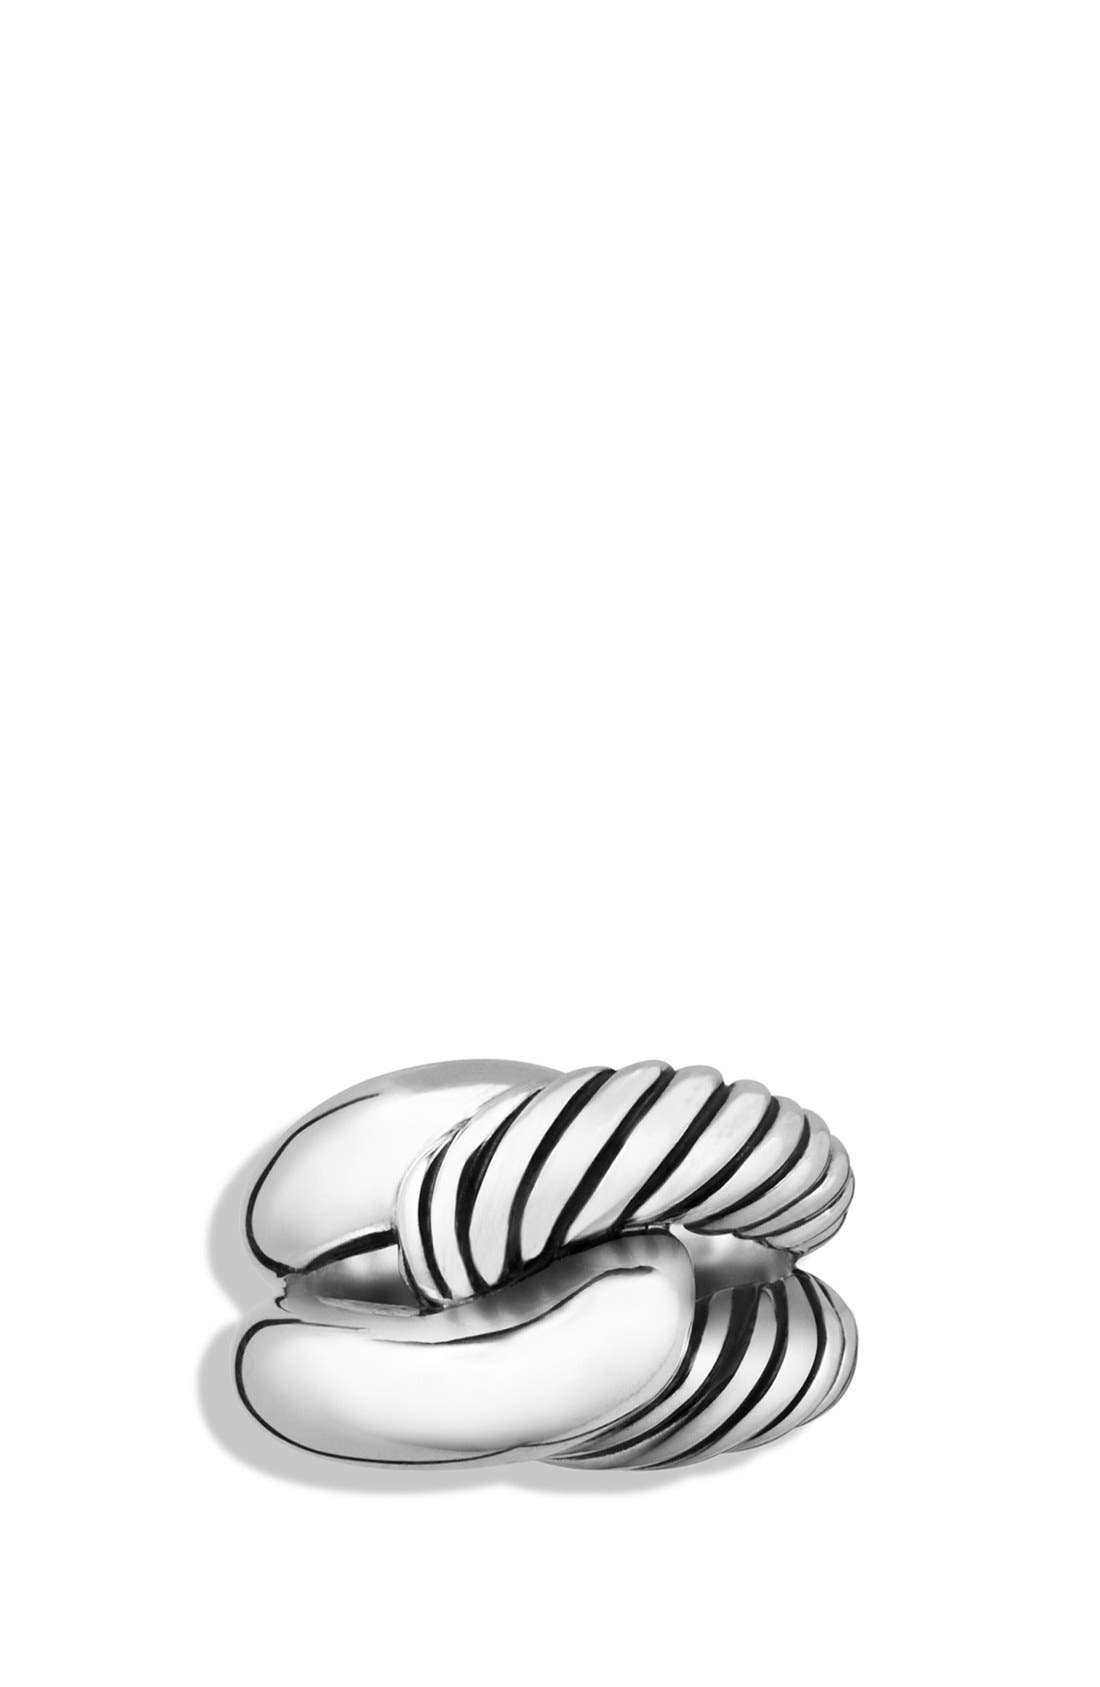 'Infinity' Large Ring,                             Alternate thumbnail 4, color,                             040